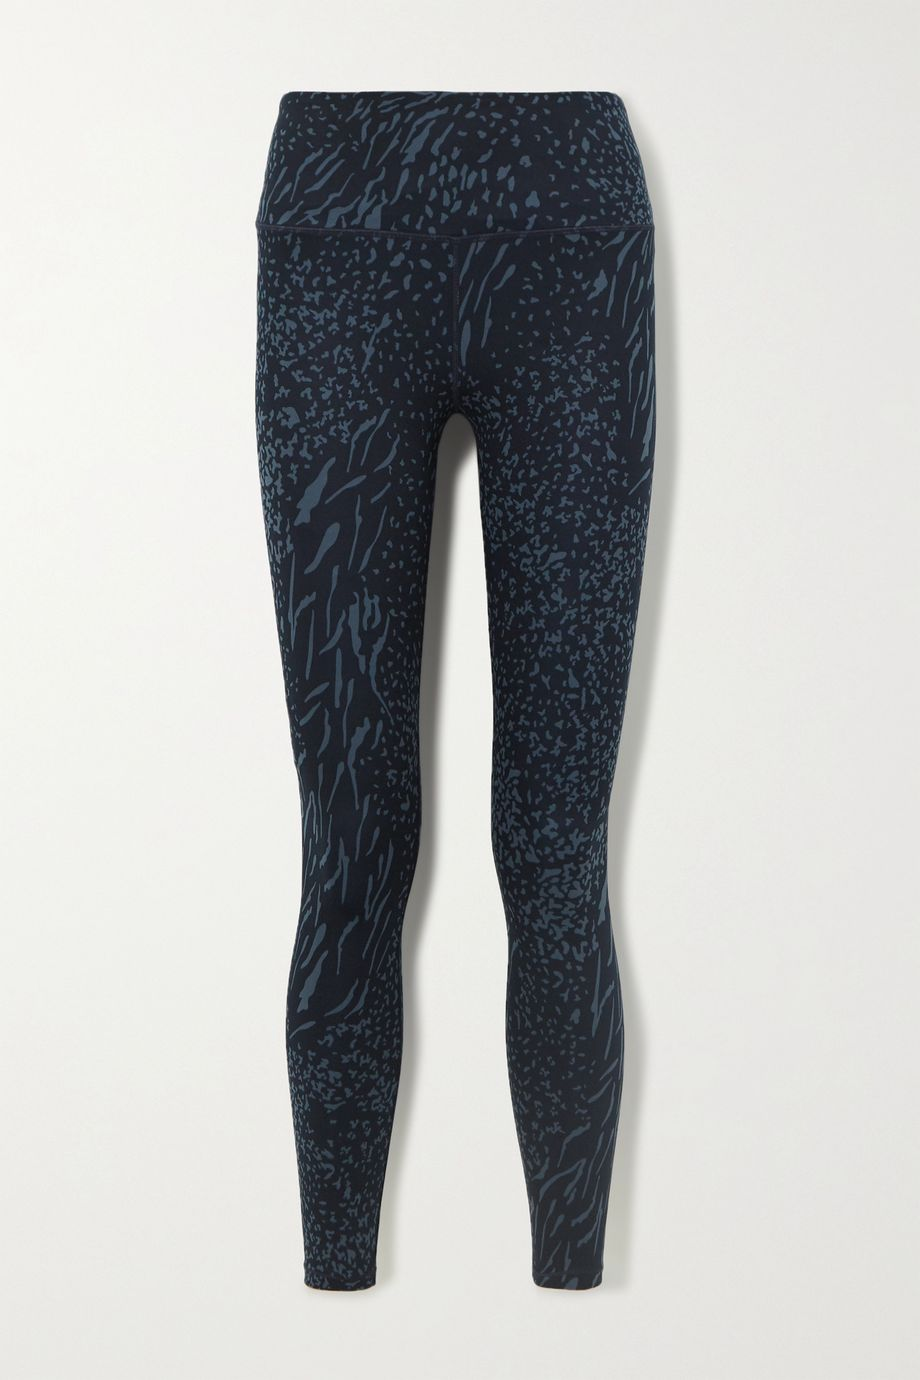 Varley Century bedruckte Stretch-Leggings